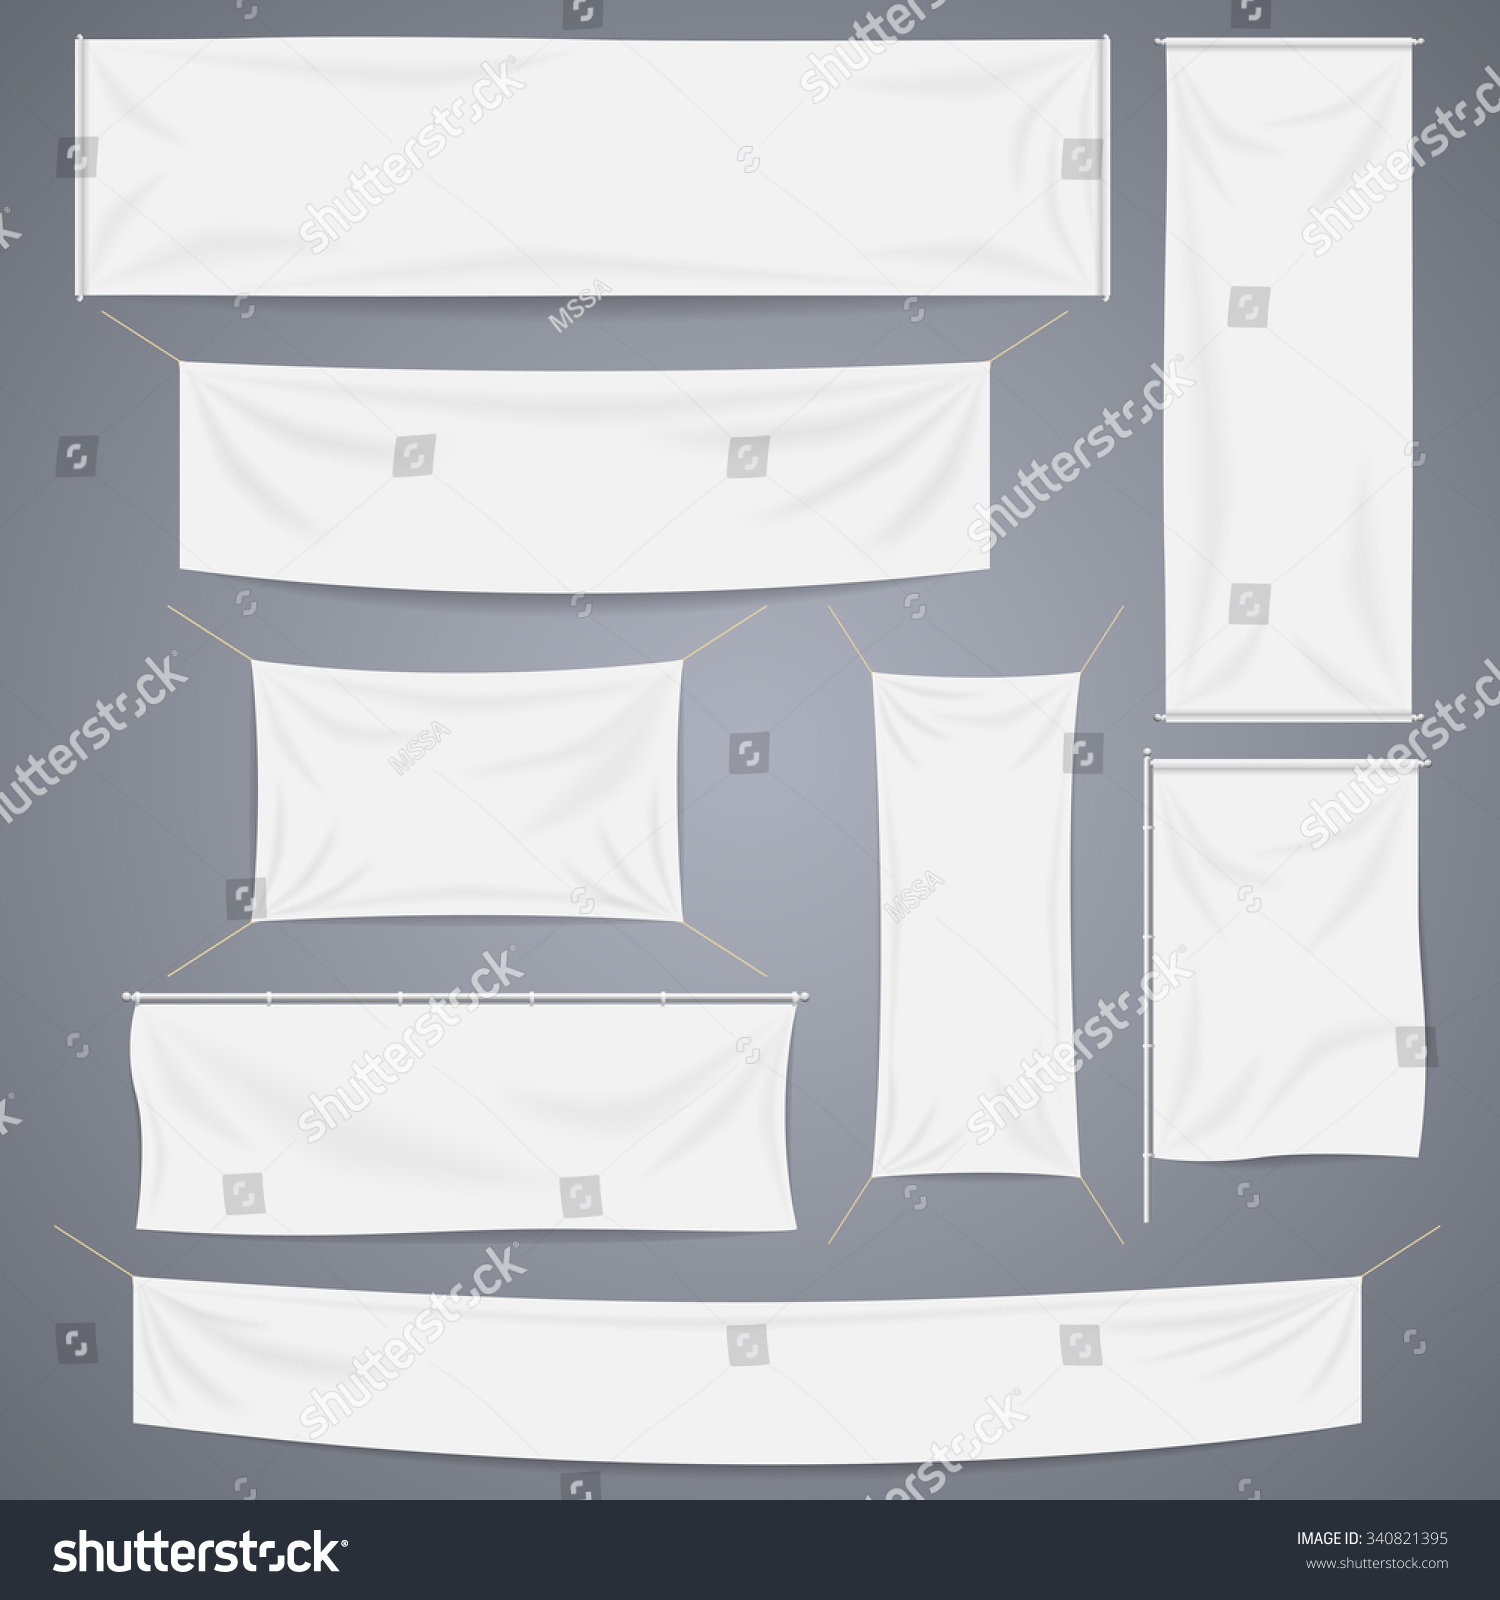 White textile banners with folds template set. Separate shadow. Cotton and canvas, flag blank, advertising empty, vector illustration #340821395